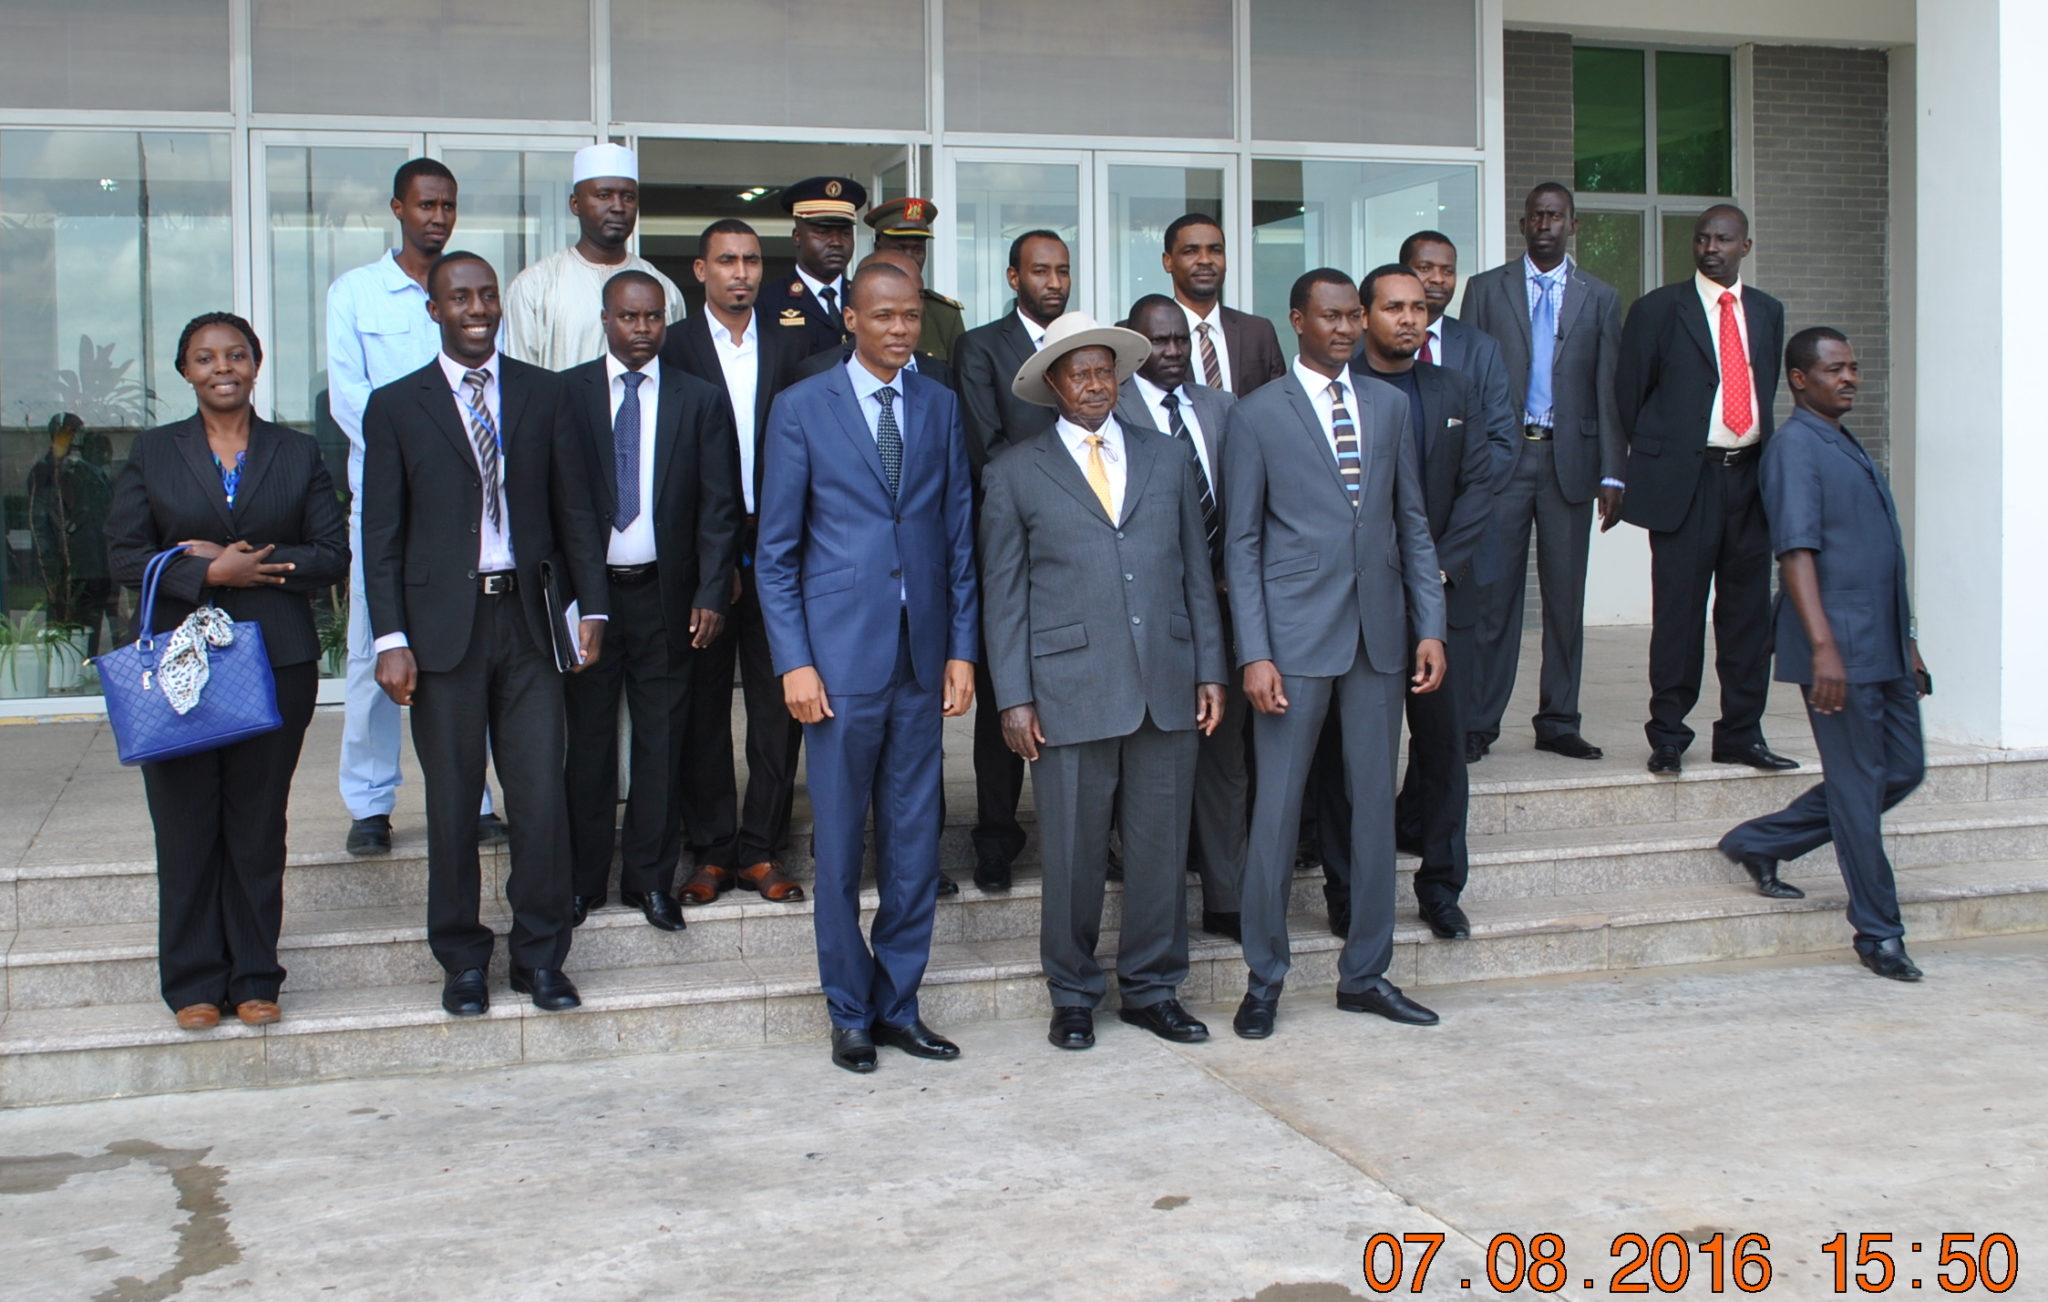 President-Museveni-with-Chad's-Minister-Djérassem-Le-Bémadjiel-and-their-respective-delegations-at-the-oil-refinery